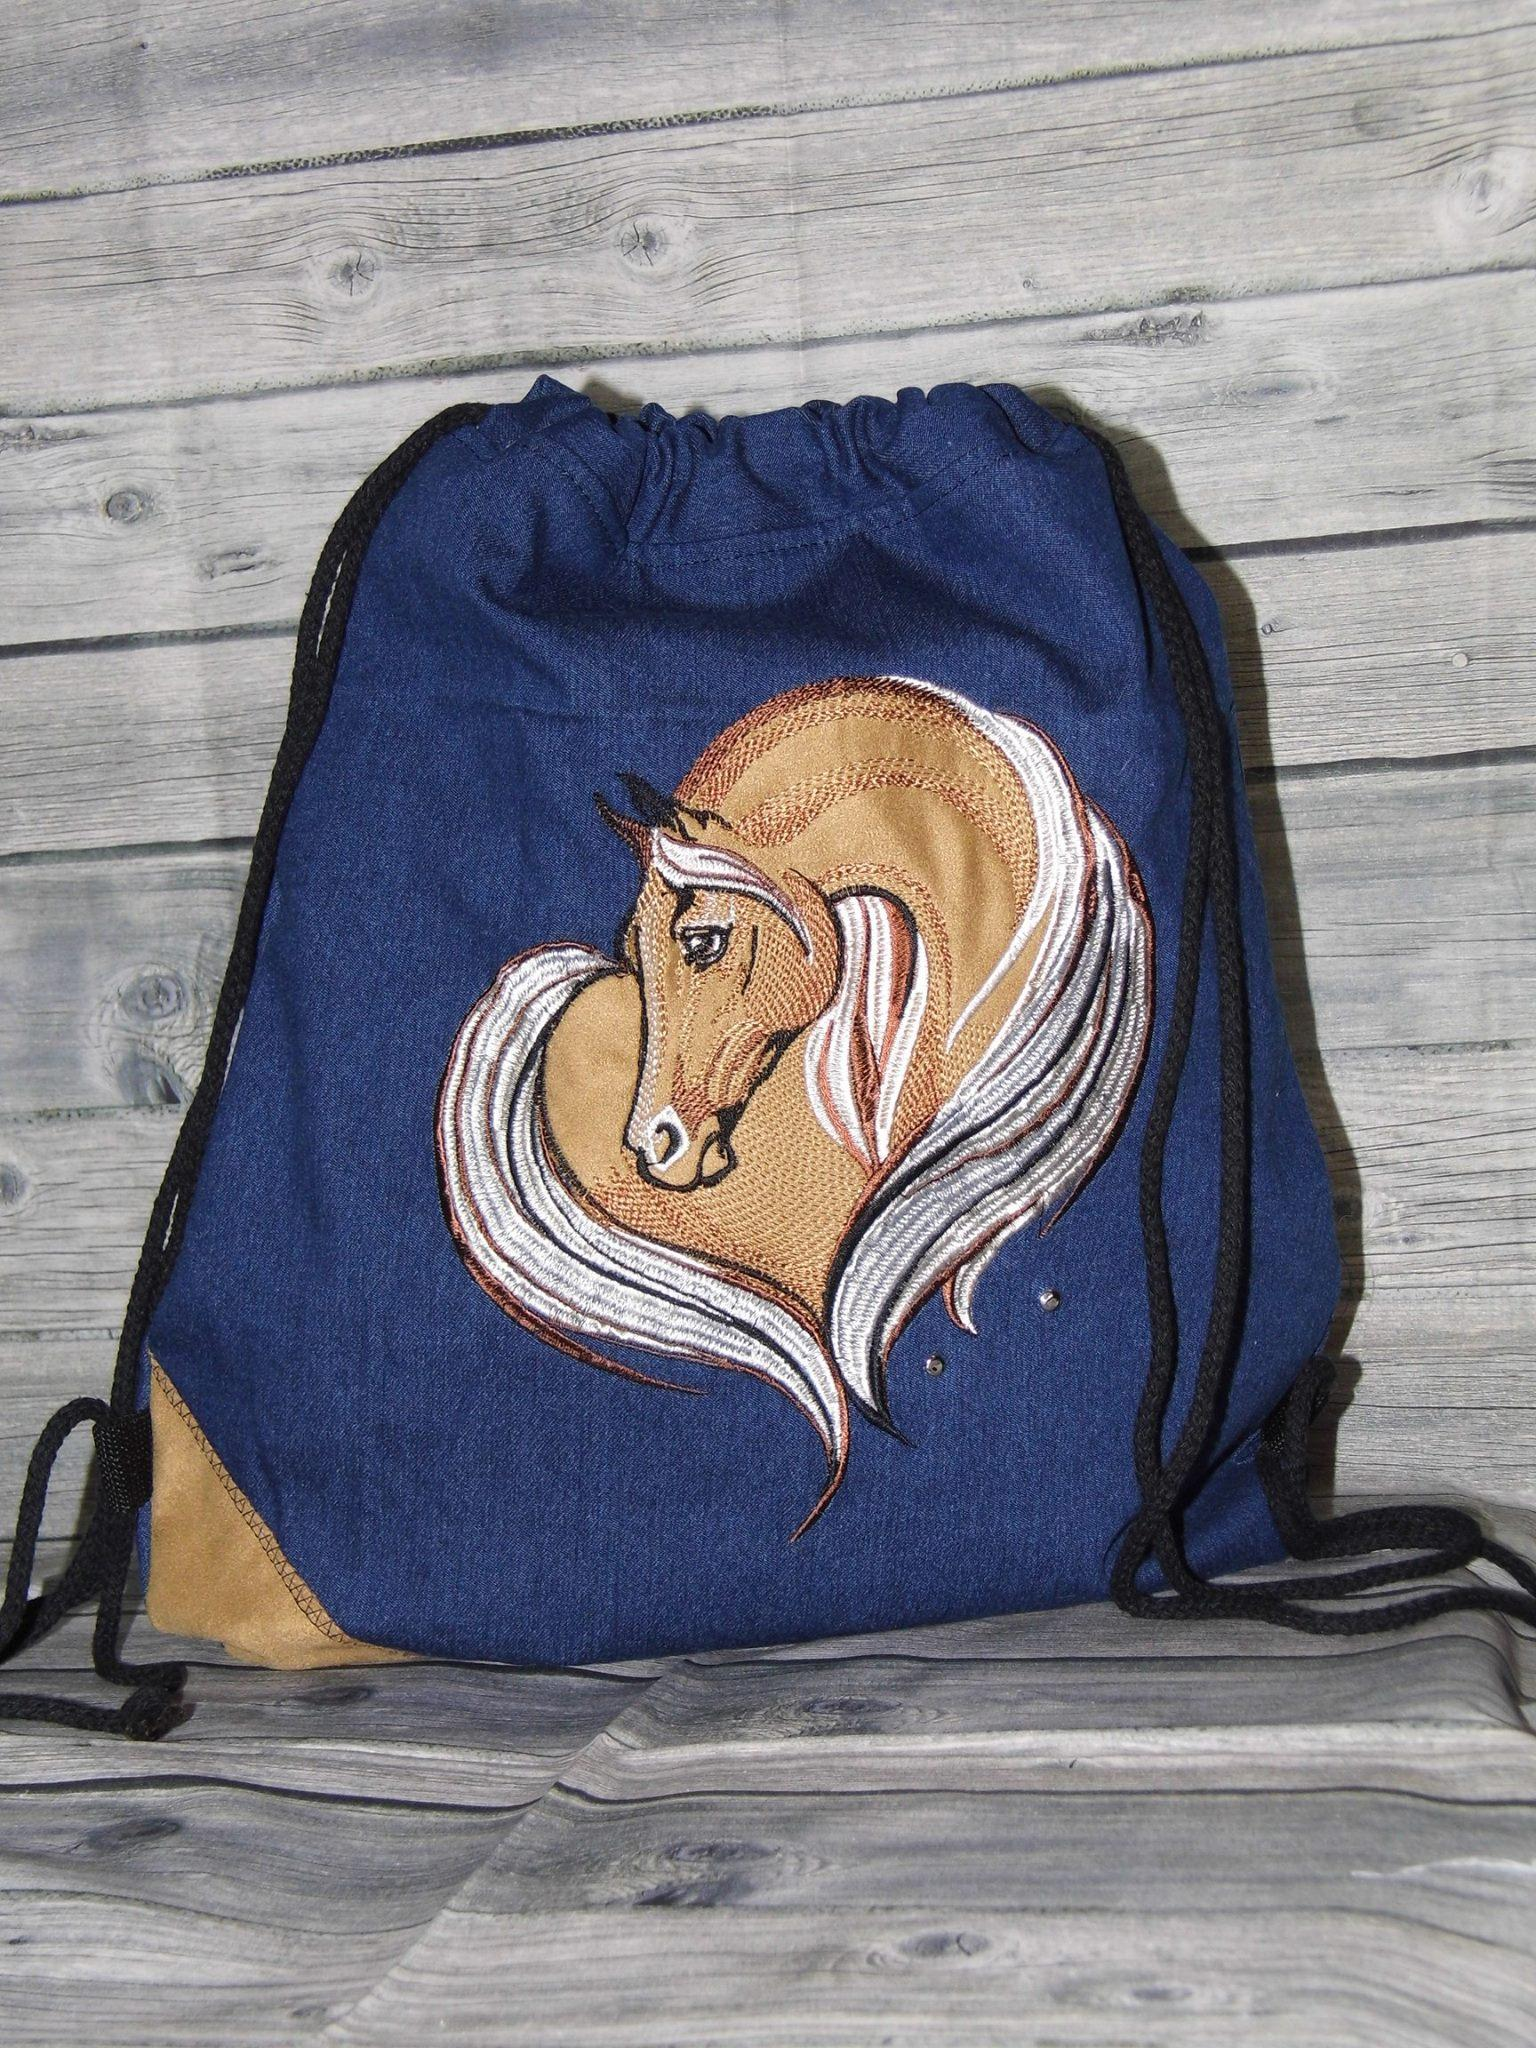 Bag for shoes with embroidered horse machine embroidery design